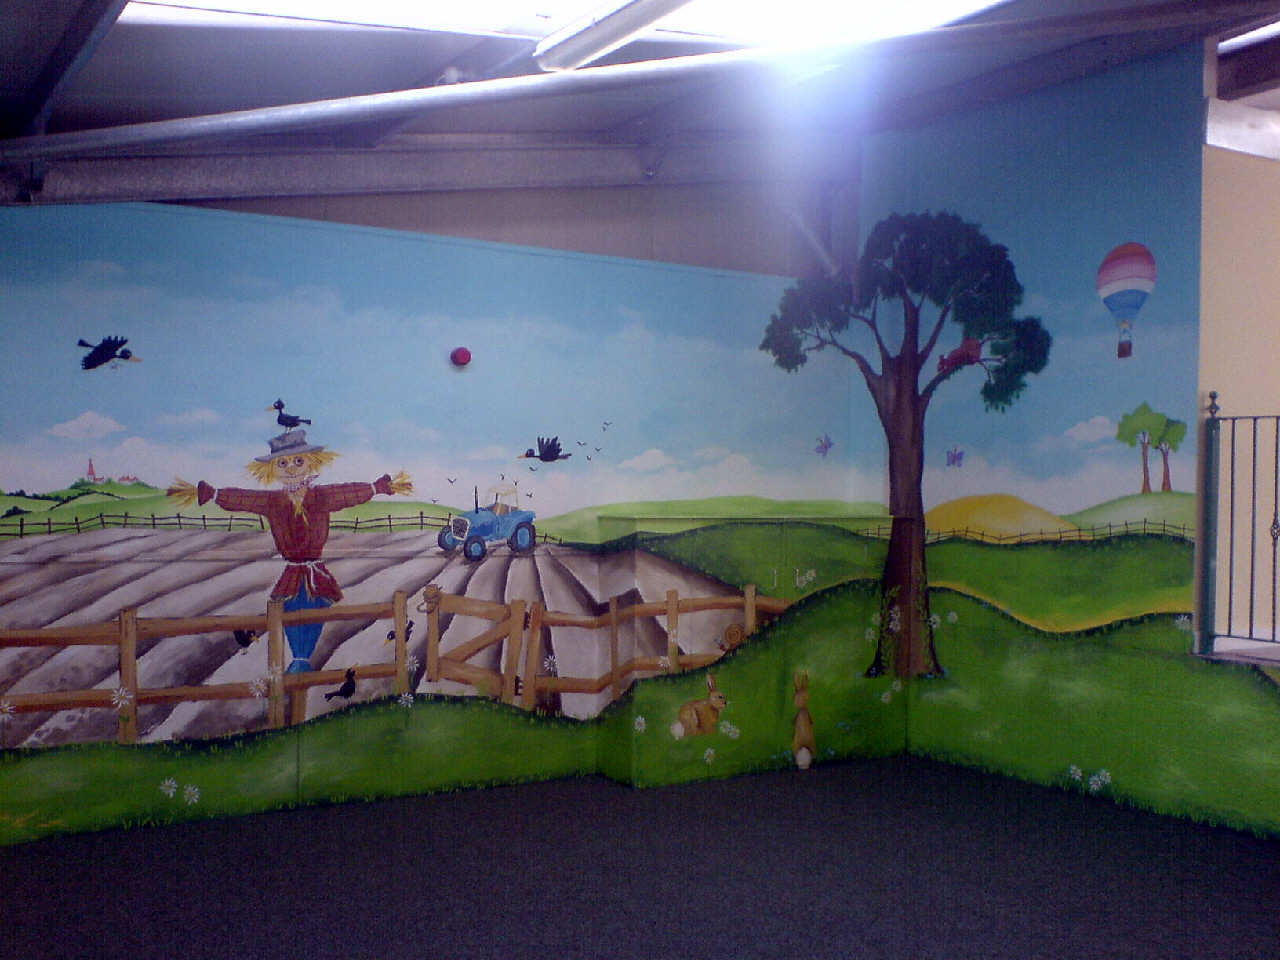 Dreamworld creations wall murals edinburgh dreamworld for Edinburgh wall mural